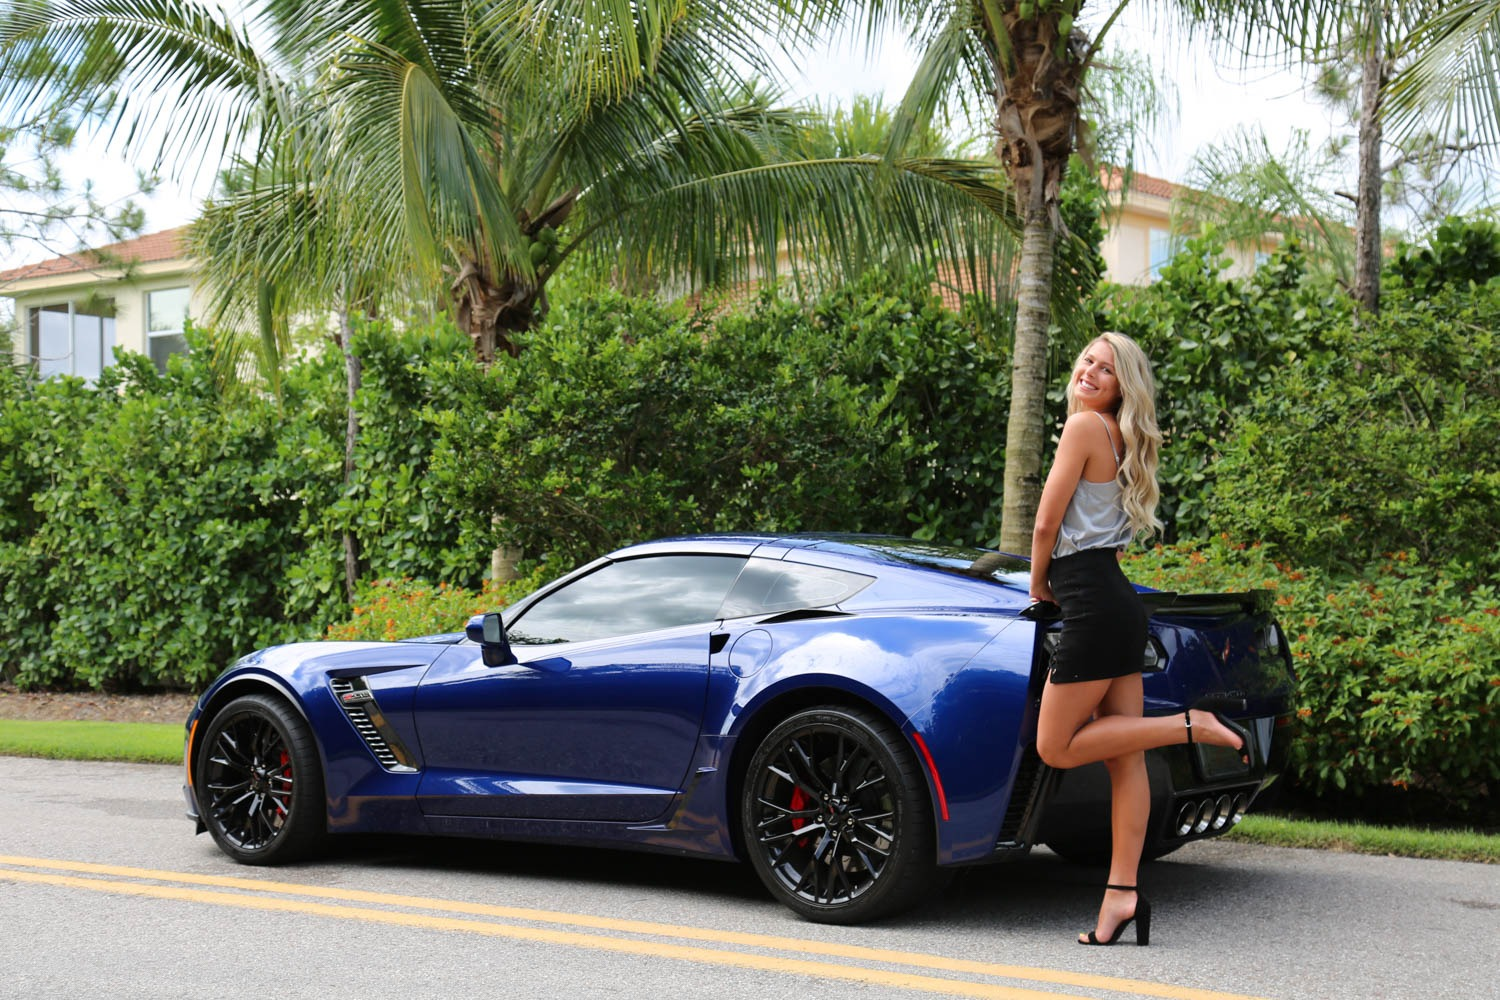 Used 2016 Chevrolet Z06 Corvette Z06 for sale Sold at Muscle Cars for Sale Inc. in Fort Myers FL 33912 1